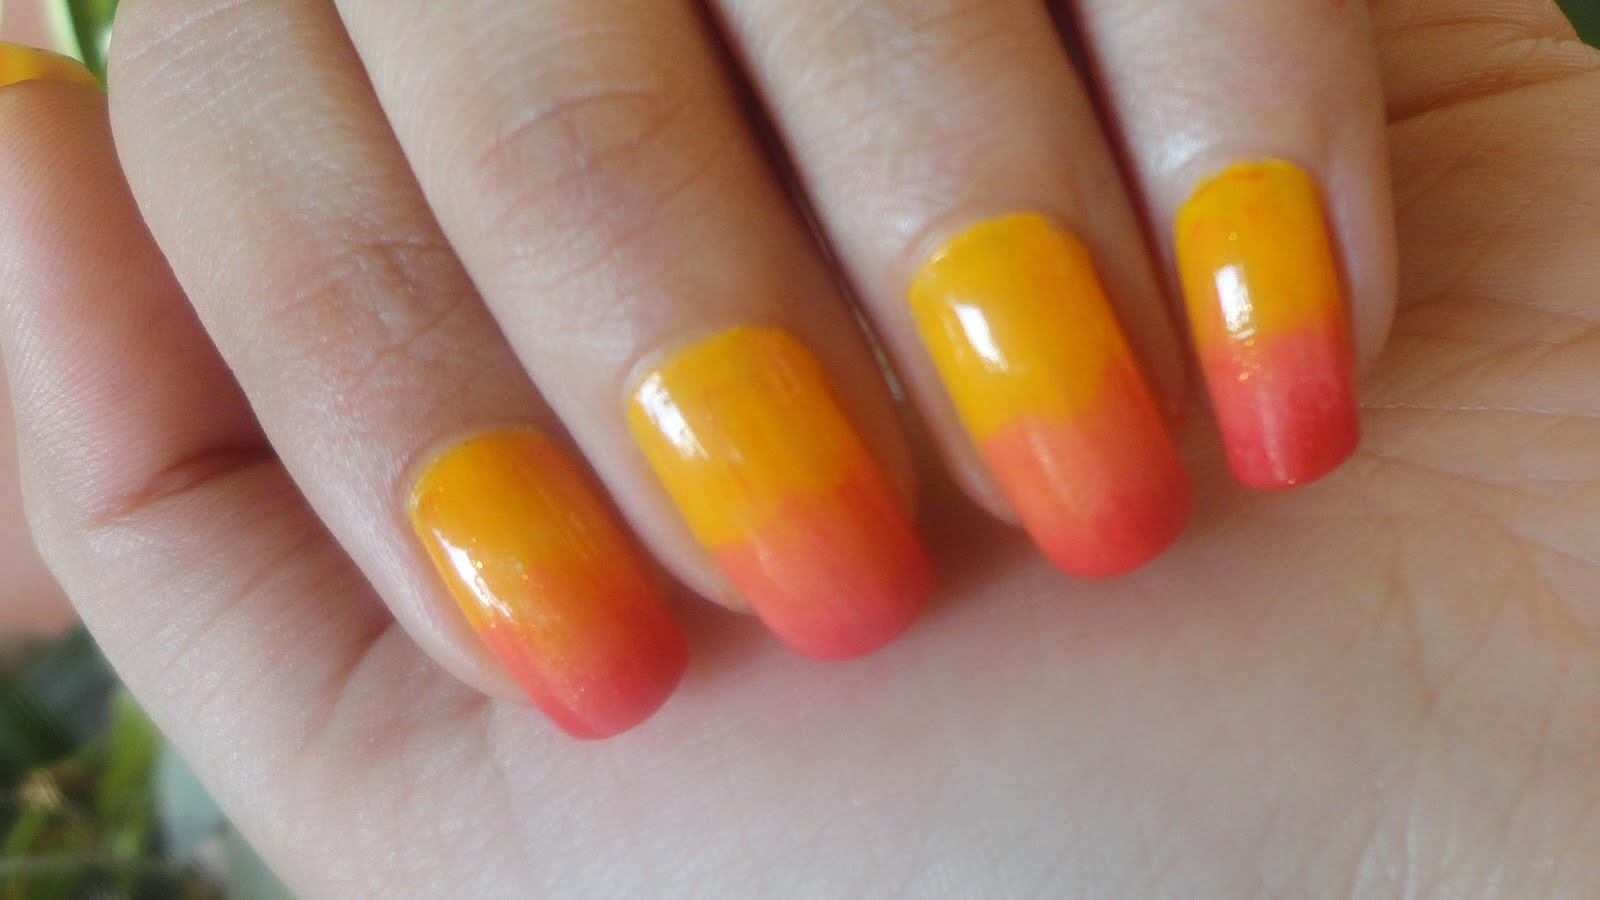 How to do ombre nail art at home step by step | Nail Art ...